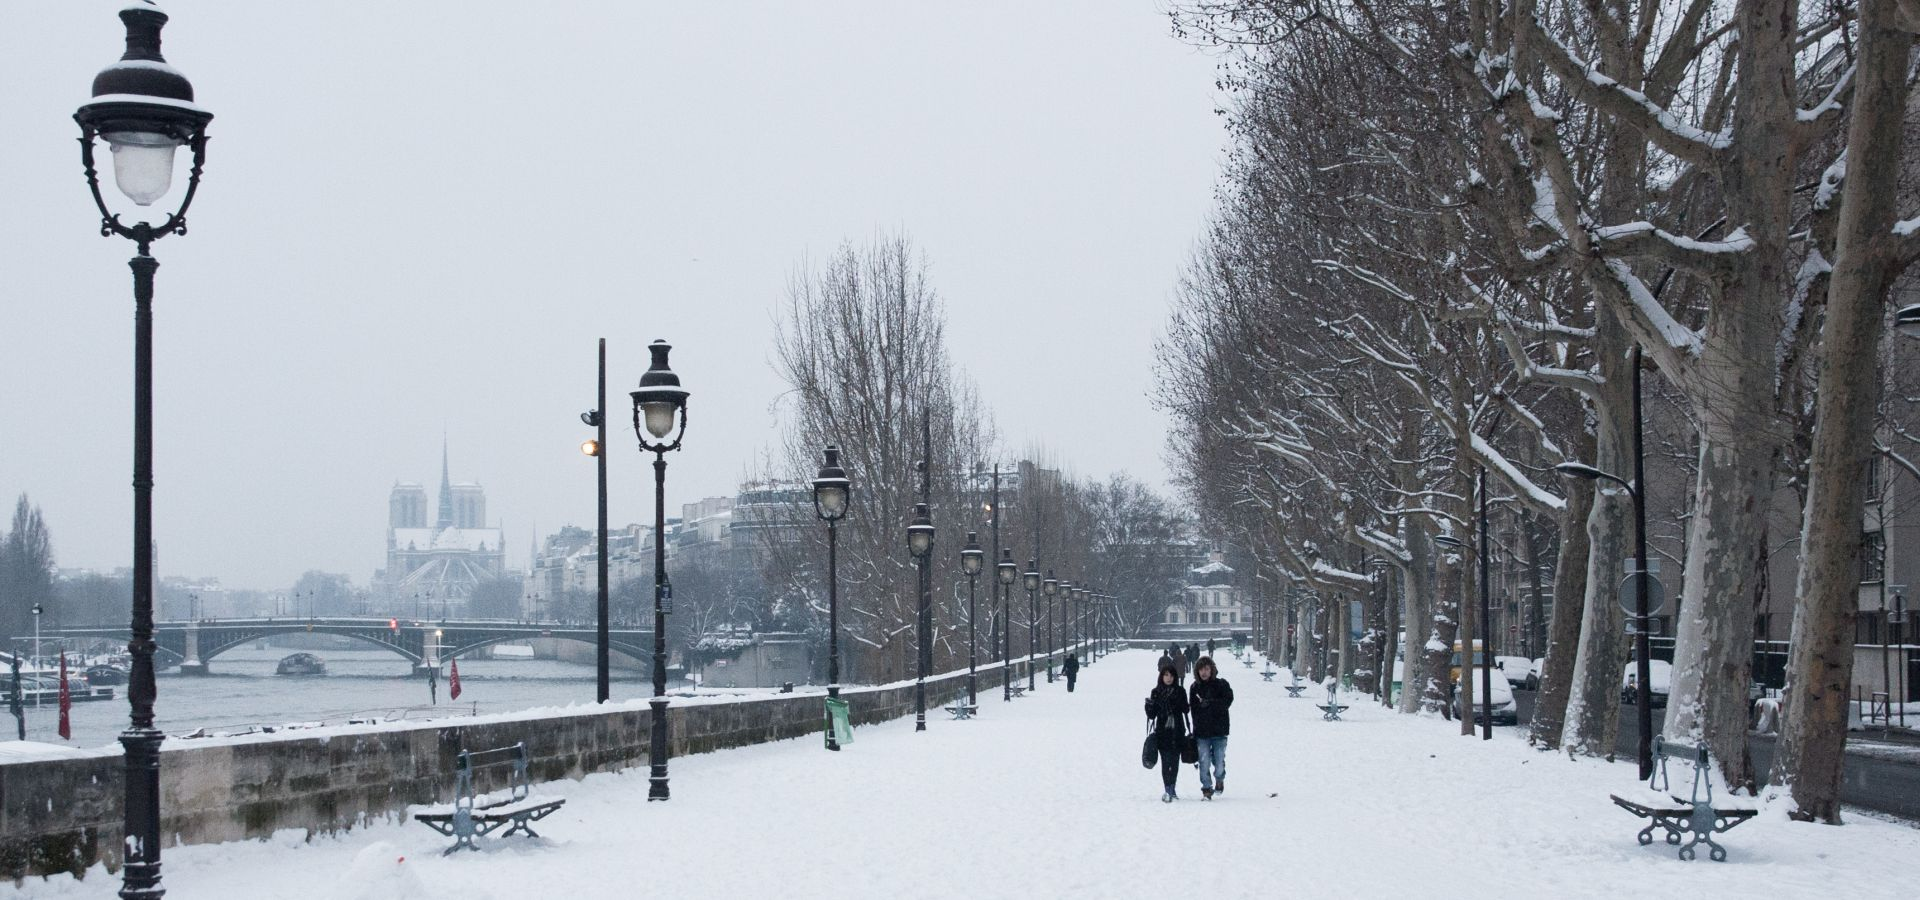 Quai de la Rapee in the snow, view of Notre Dame Cathedral